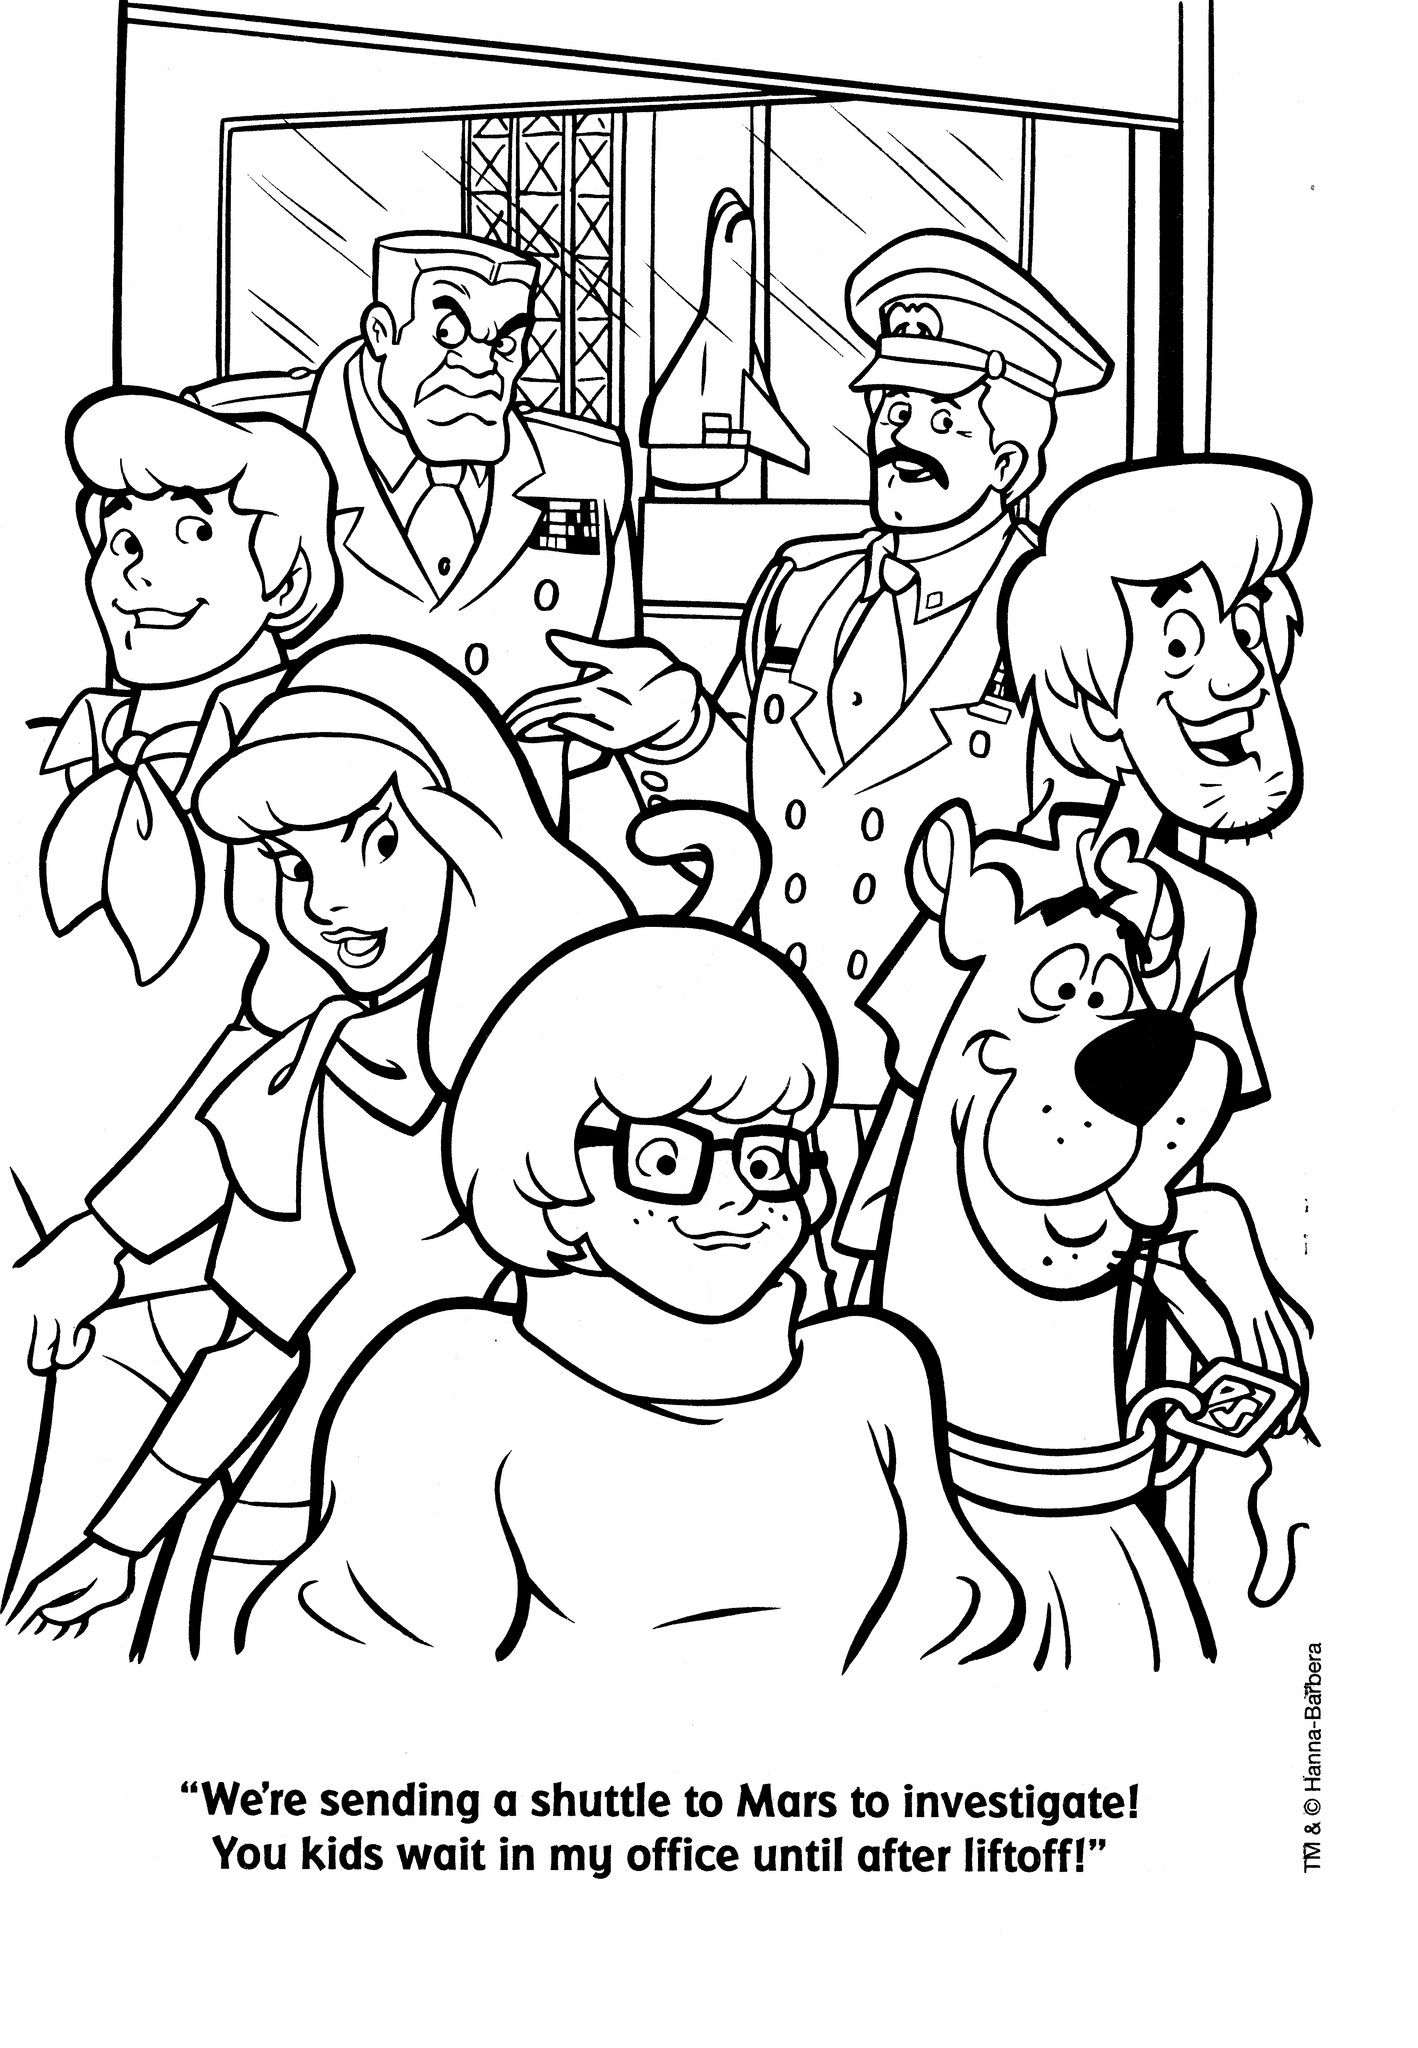 Scooby Doo Cartoon Coloring Pages at GetDrawings | Free ...